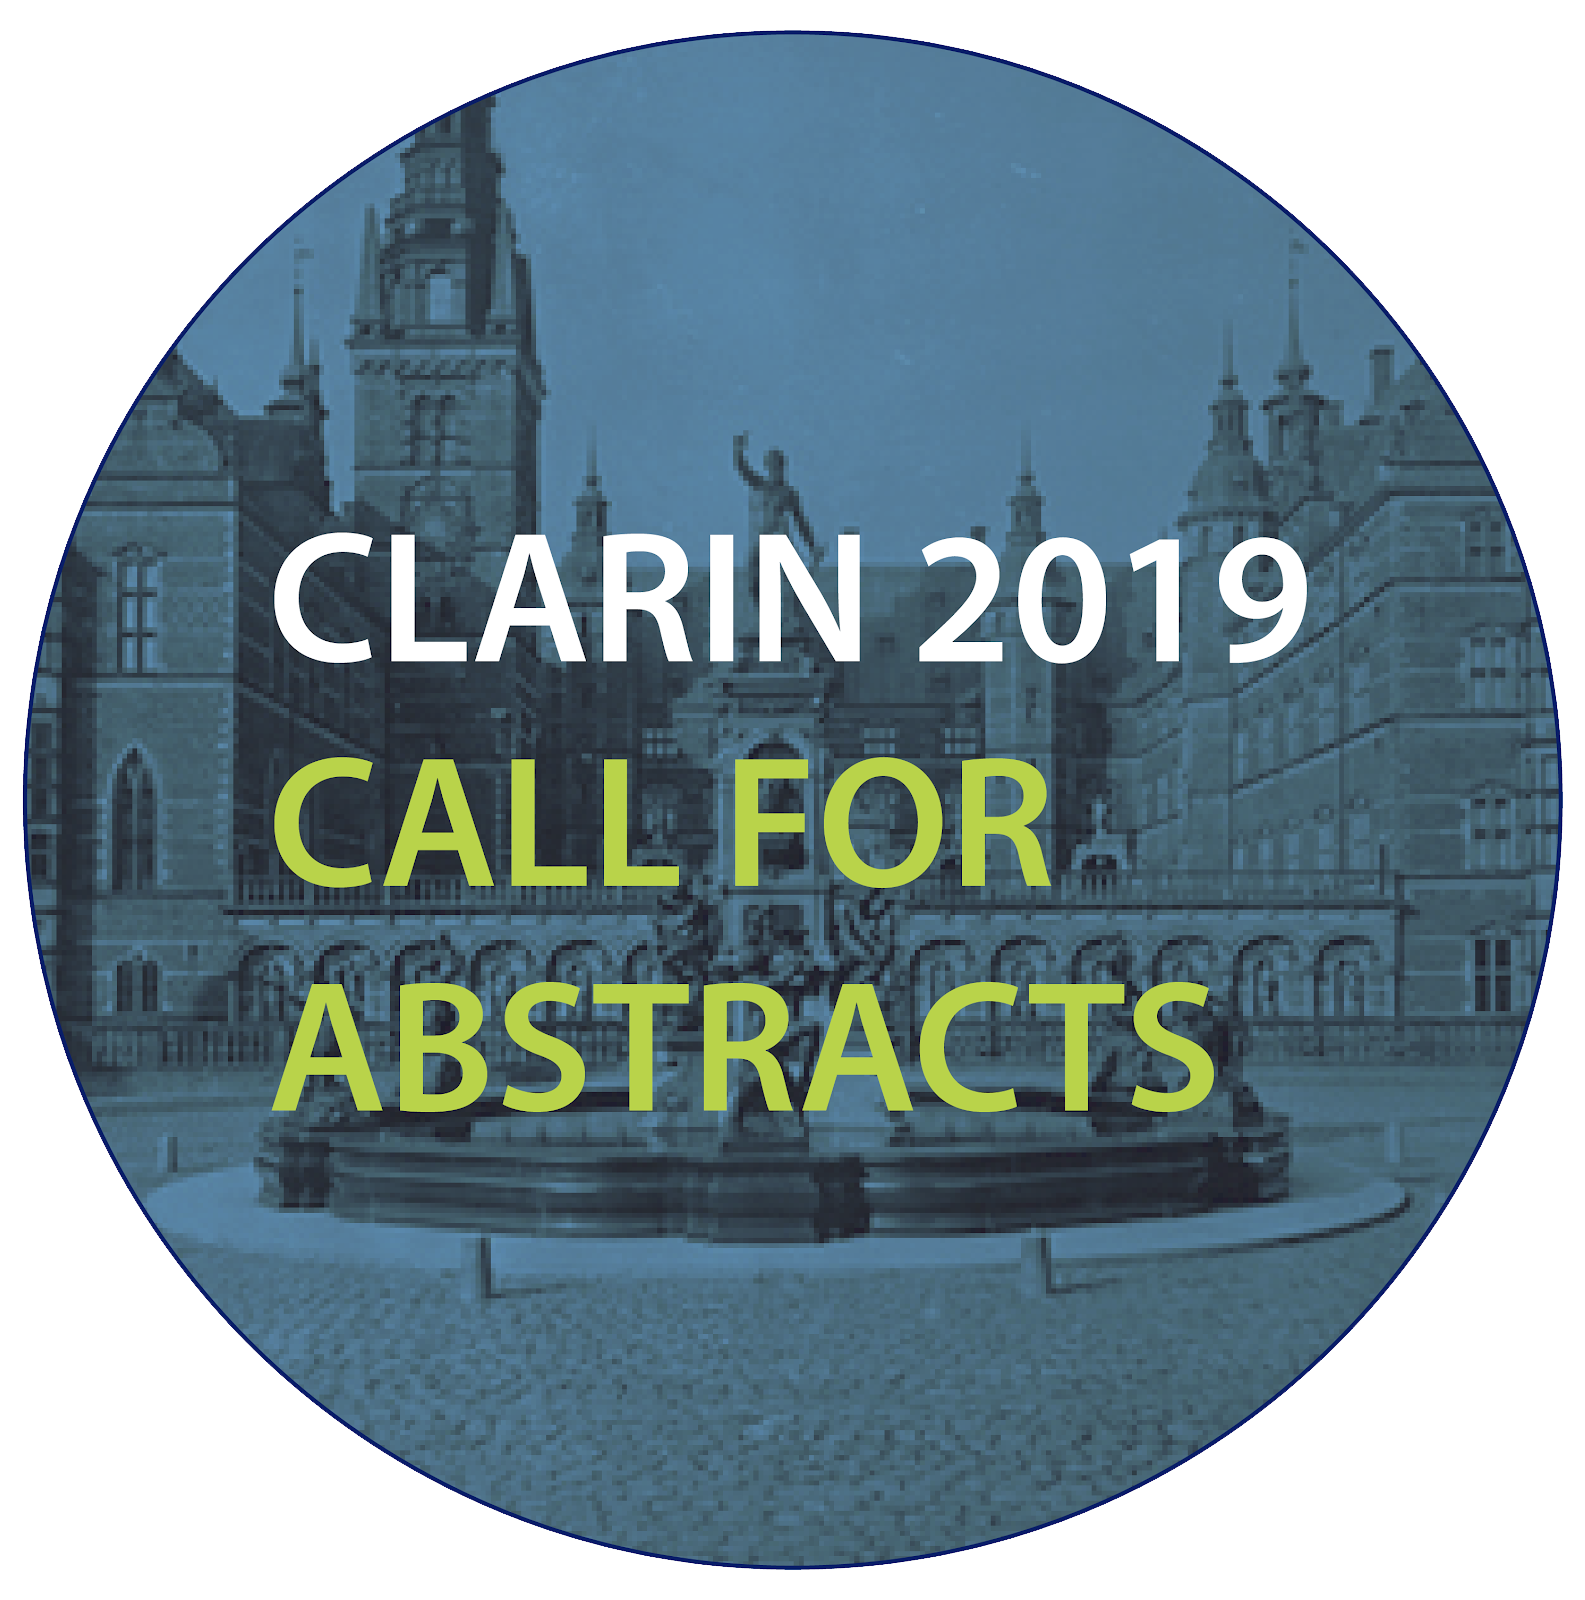 CLARIN 2019 Call for Abstracts